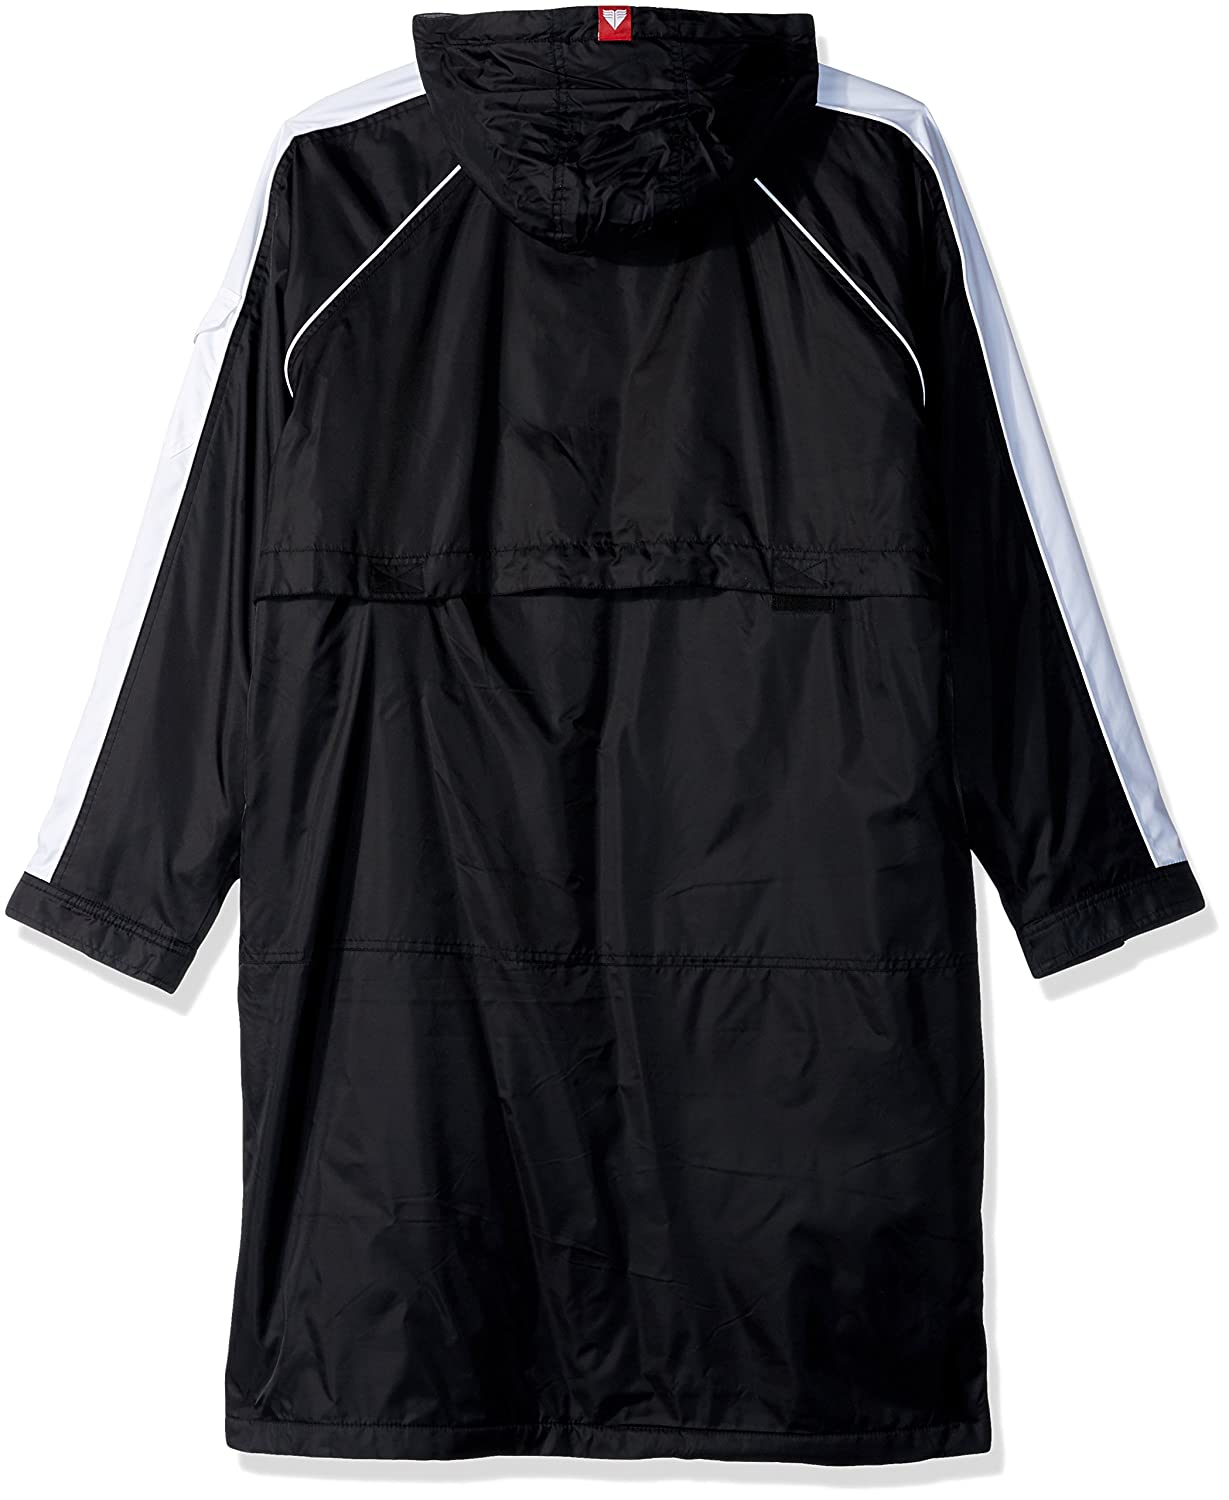 Amazon.com : Speedo Unisex Team Swim Parka : Athletic Warm Up And ...